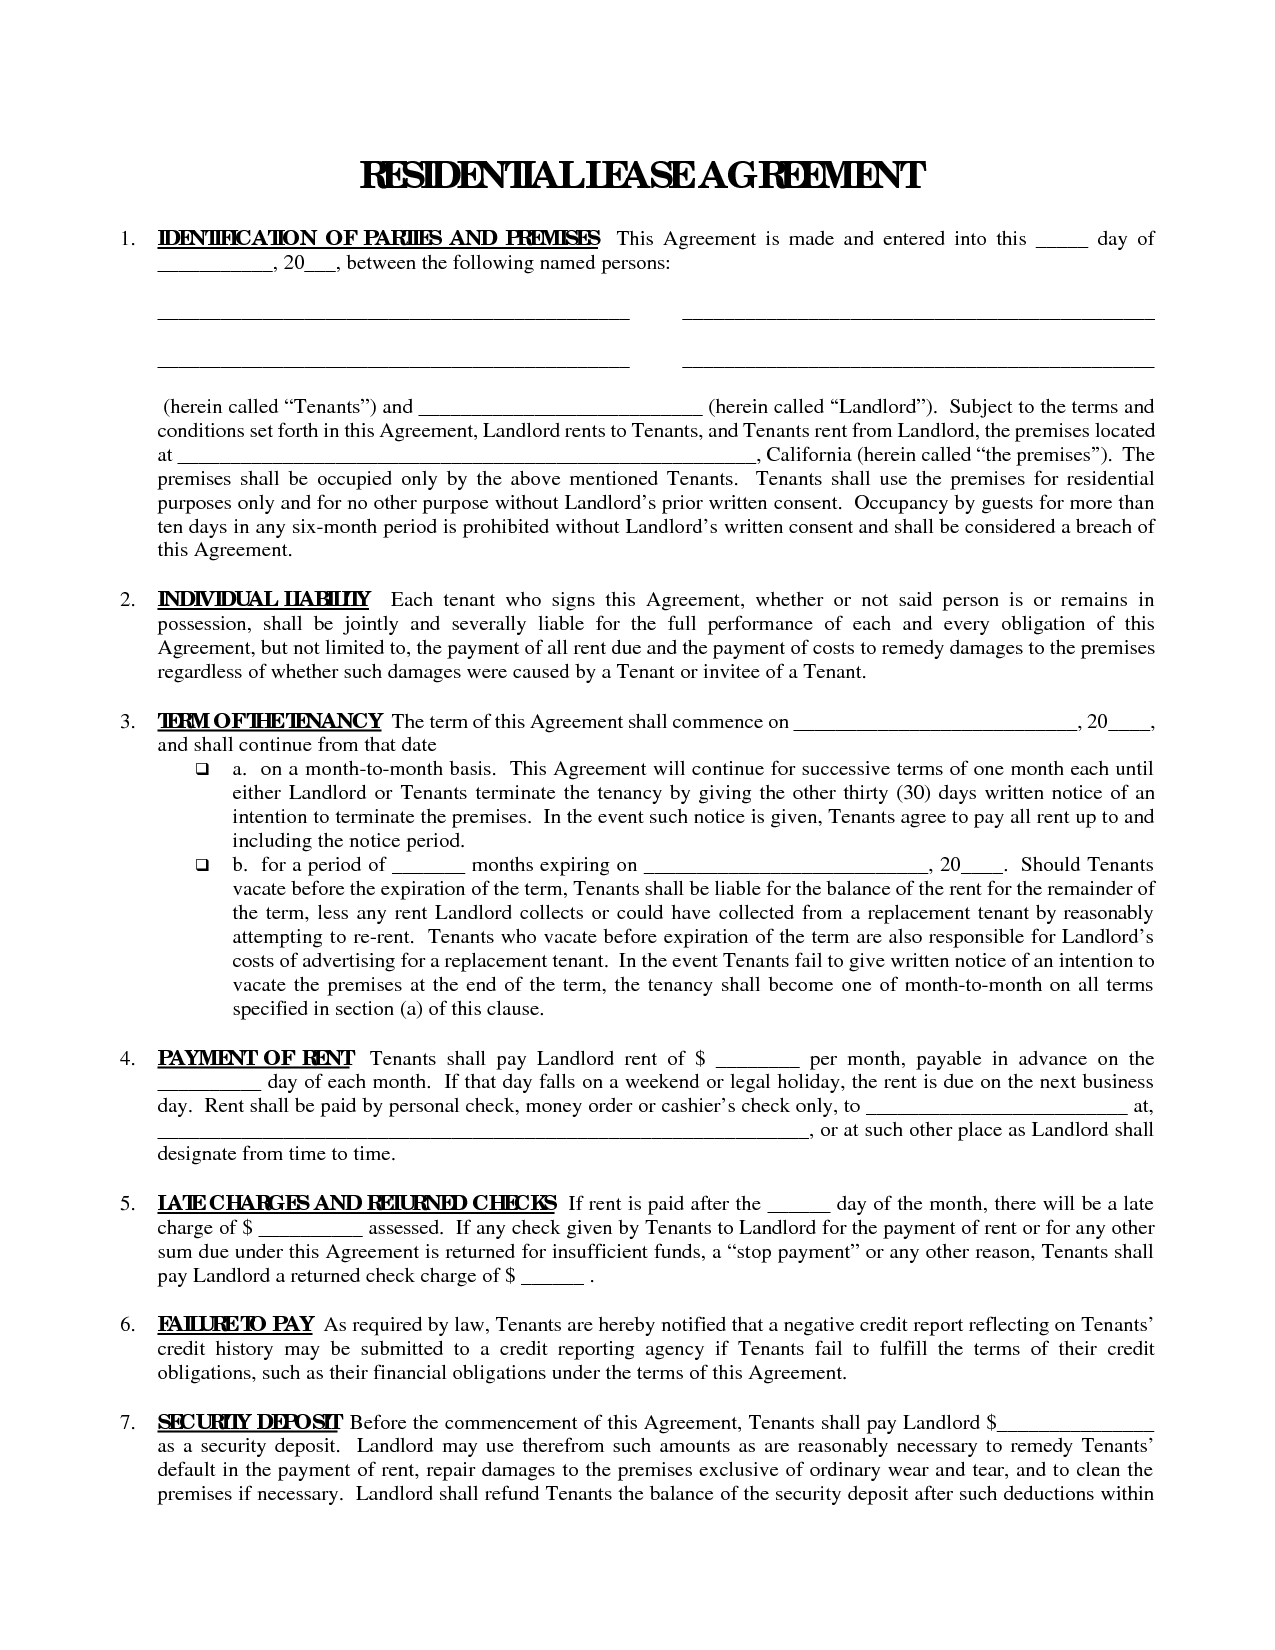 Free Printable Residential Lease Agreement free break even – Printable Rental Agreement Template